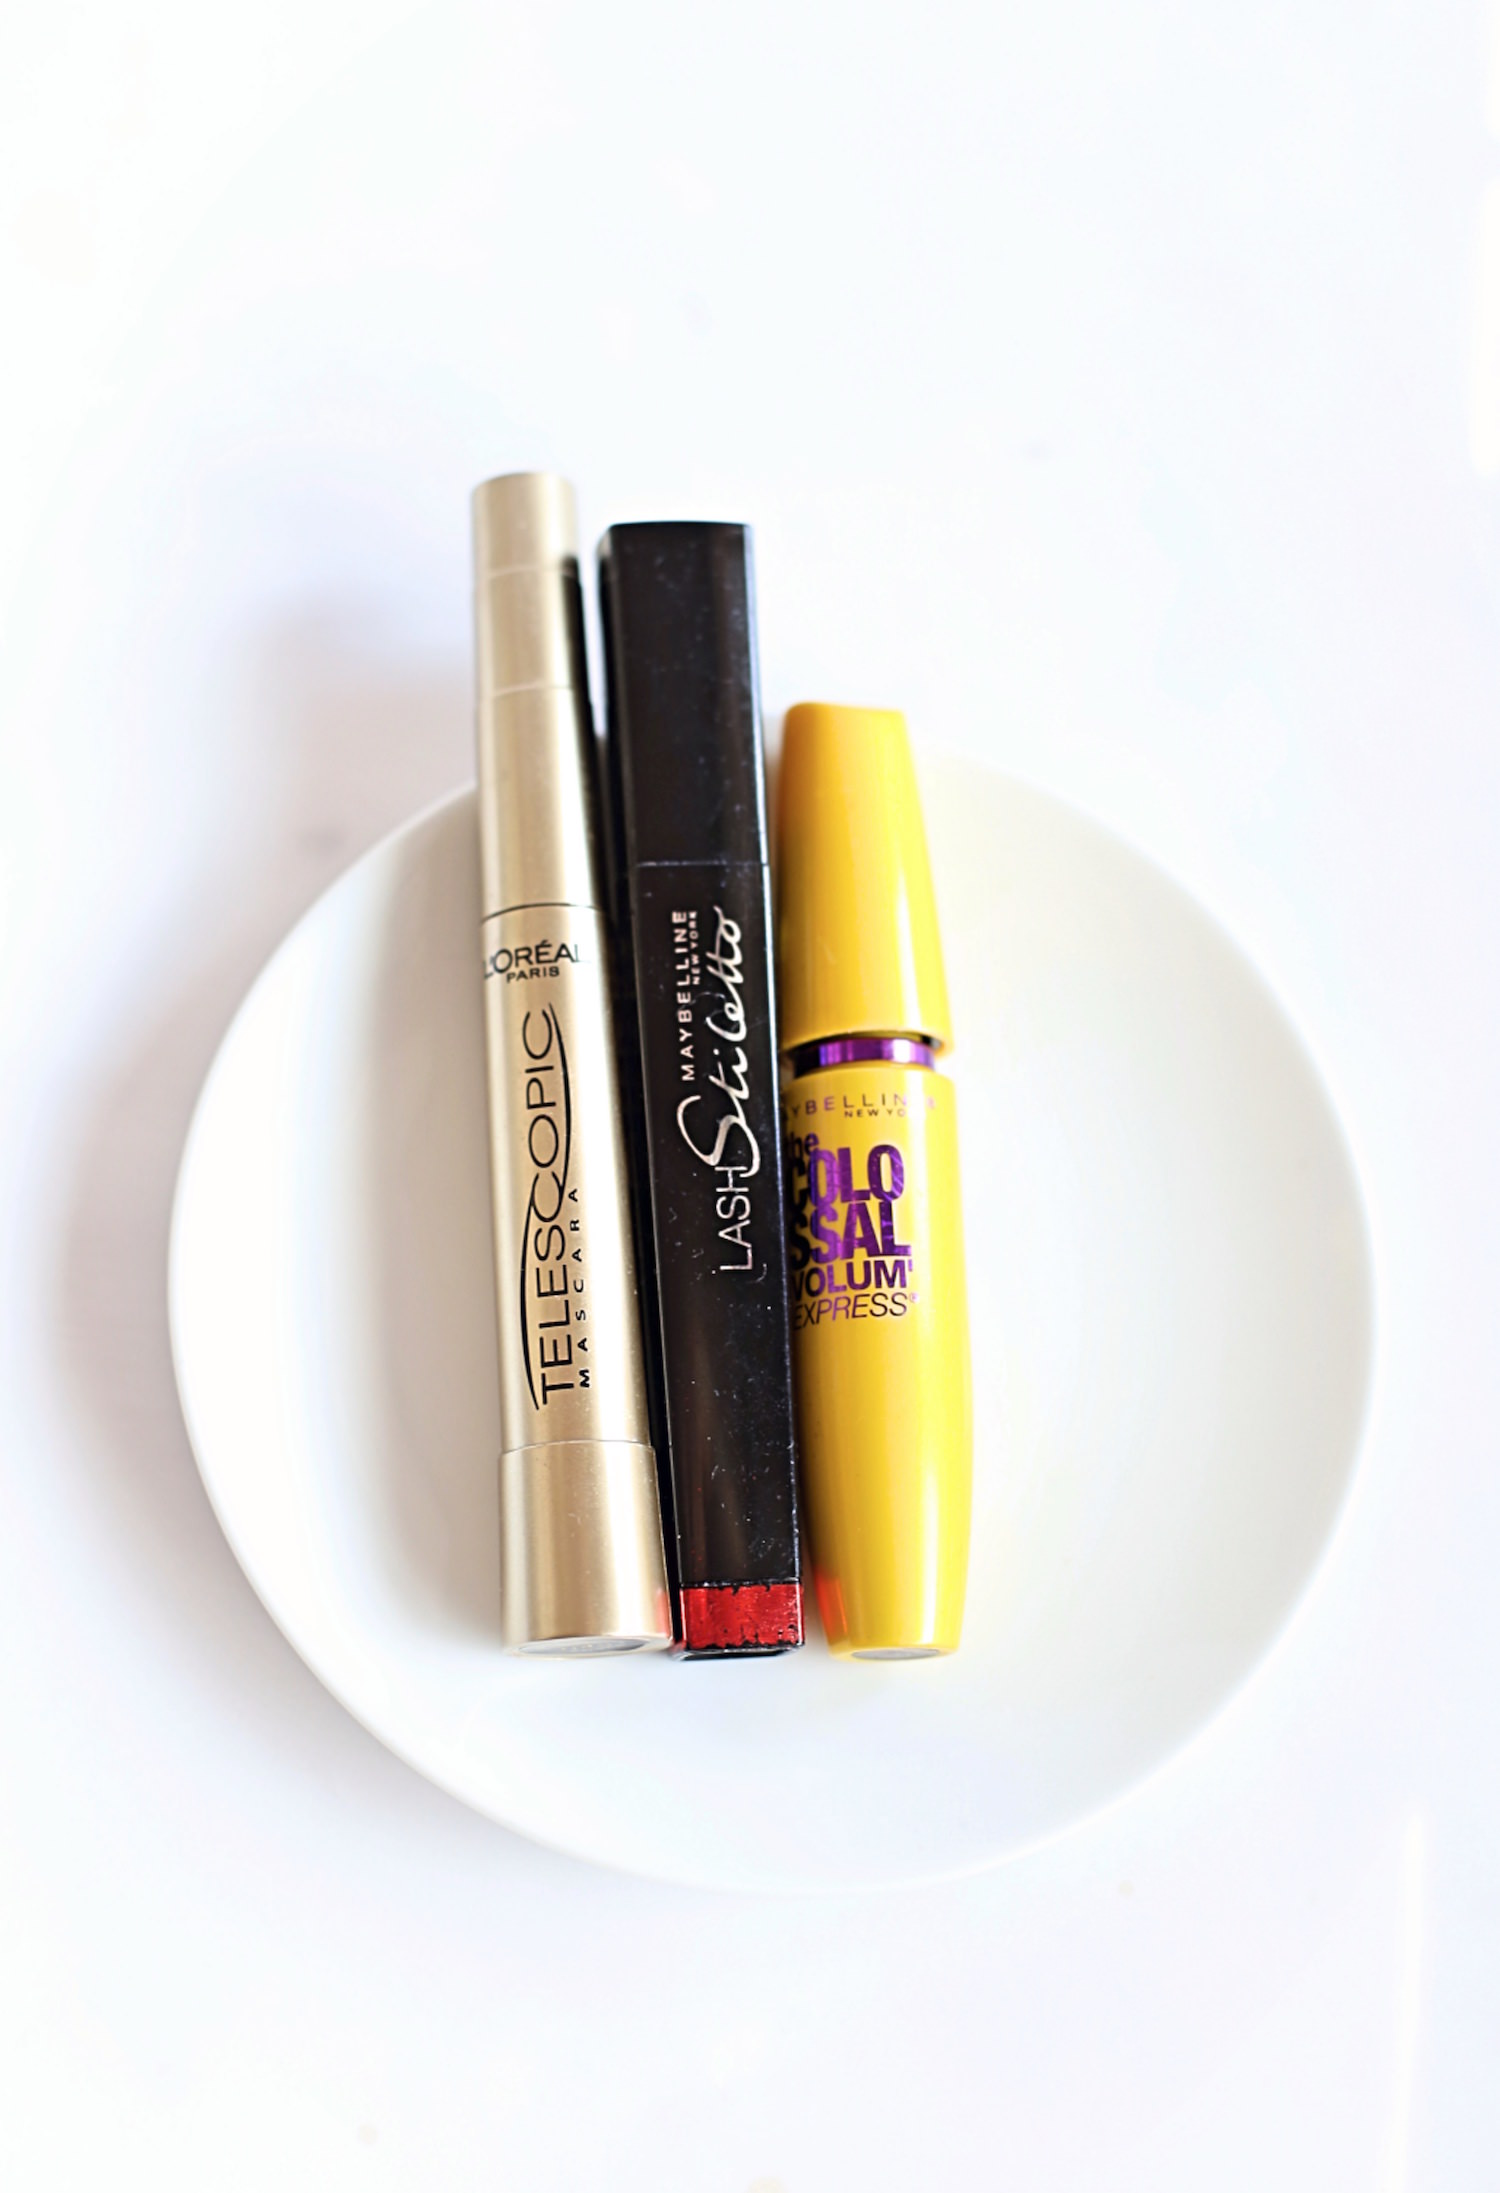 My Favorite Drugstore Makeup Products - Maybelline and Loreal Mascara | TrufflesandTrends.com